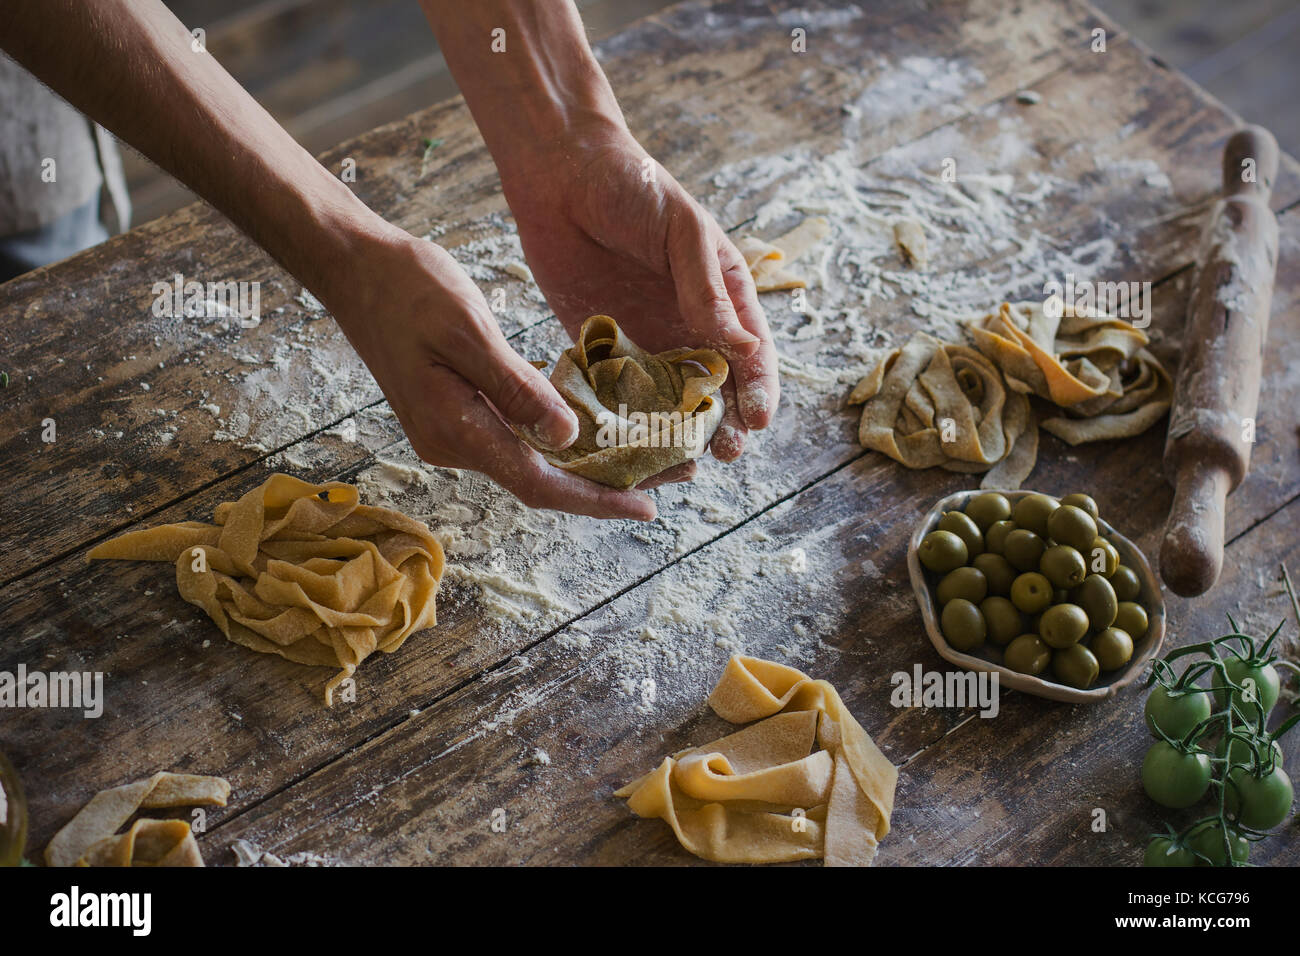 The young man in apron making homemade pasta - Stock Image